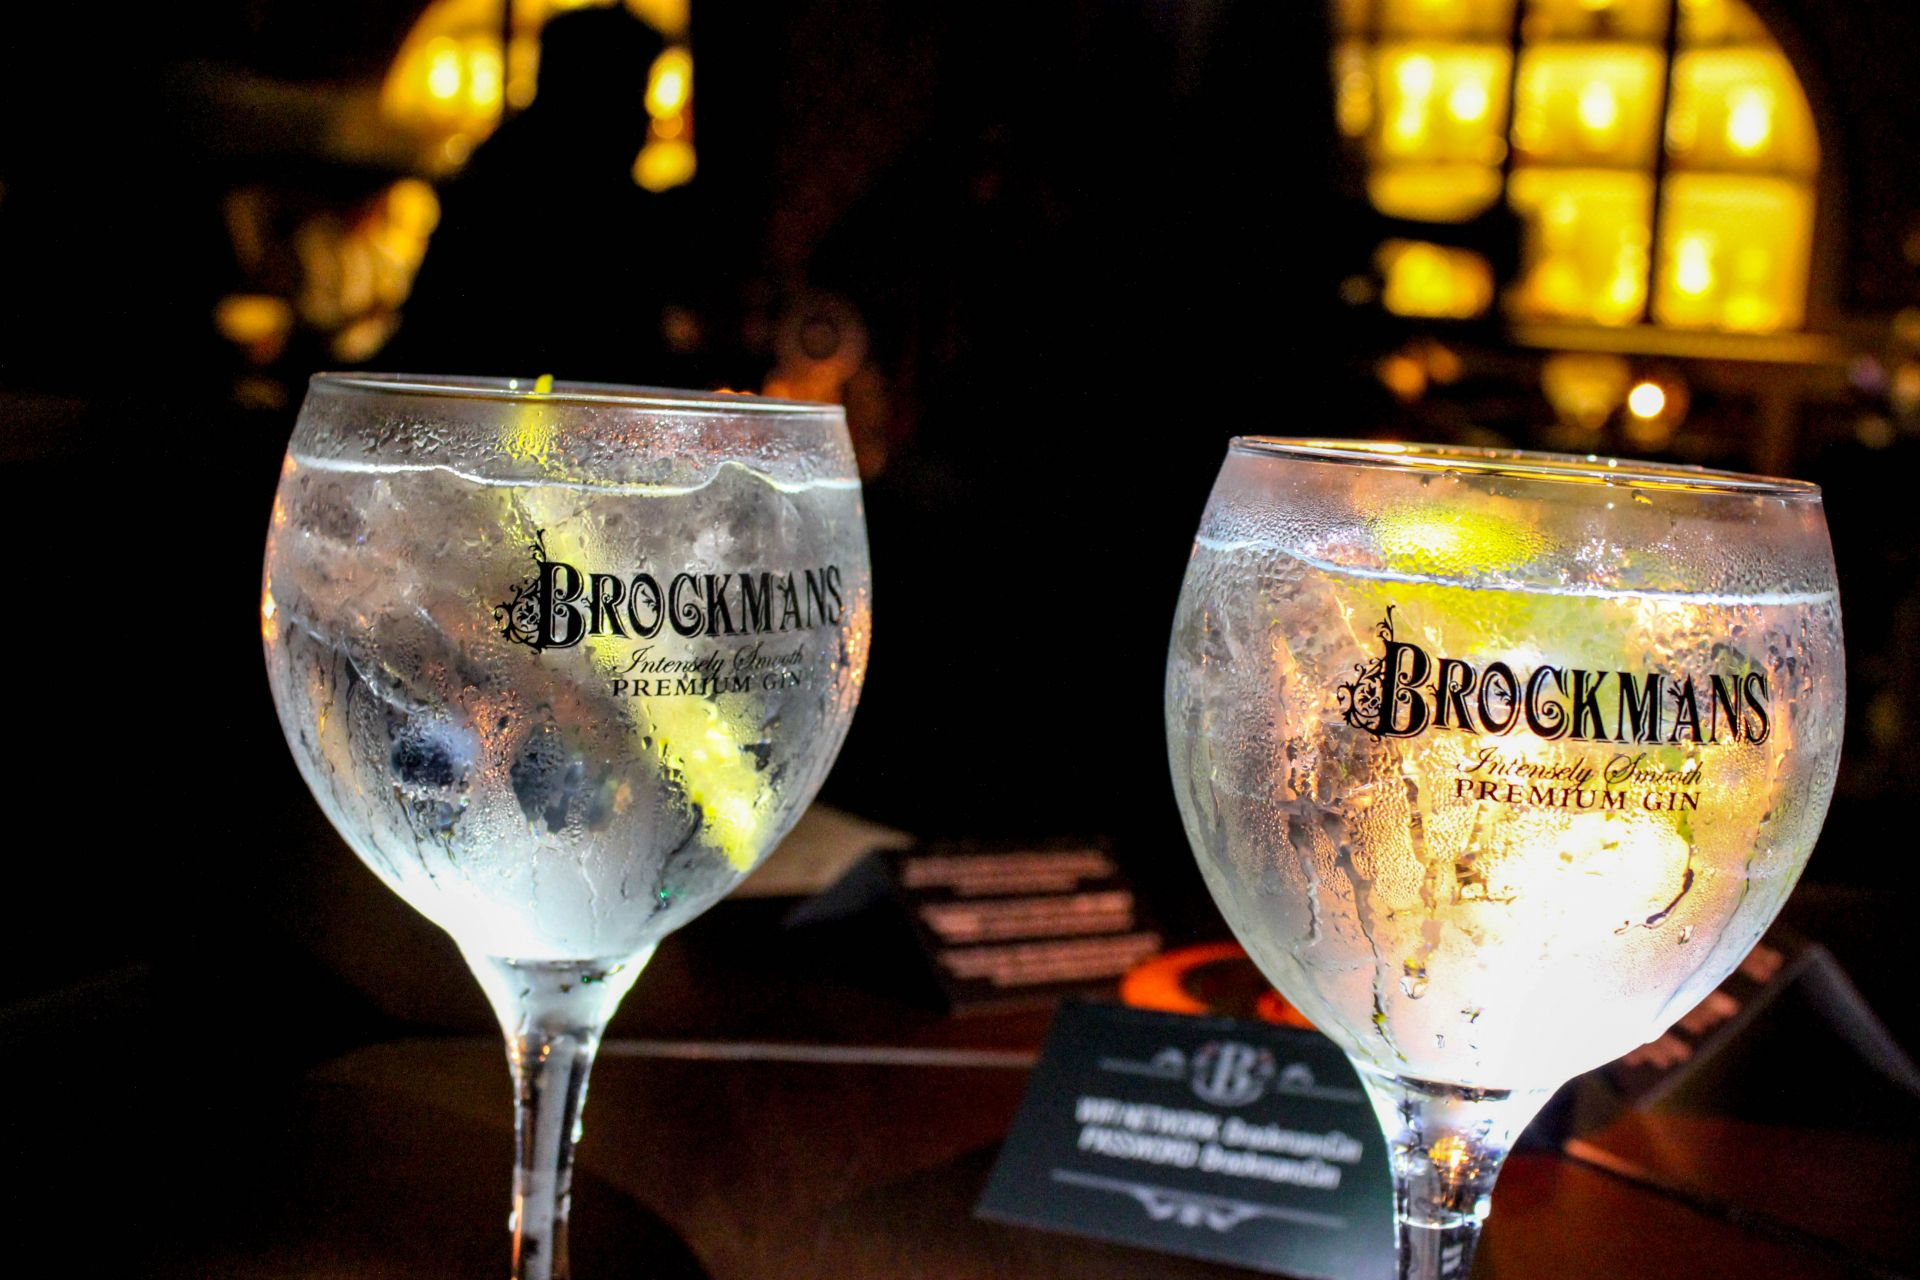 press for gin london event